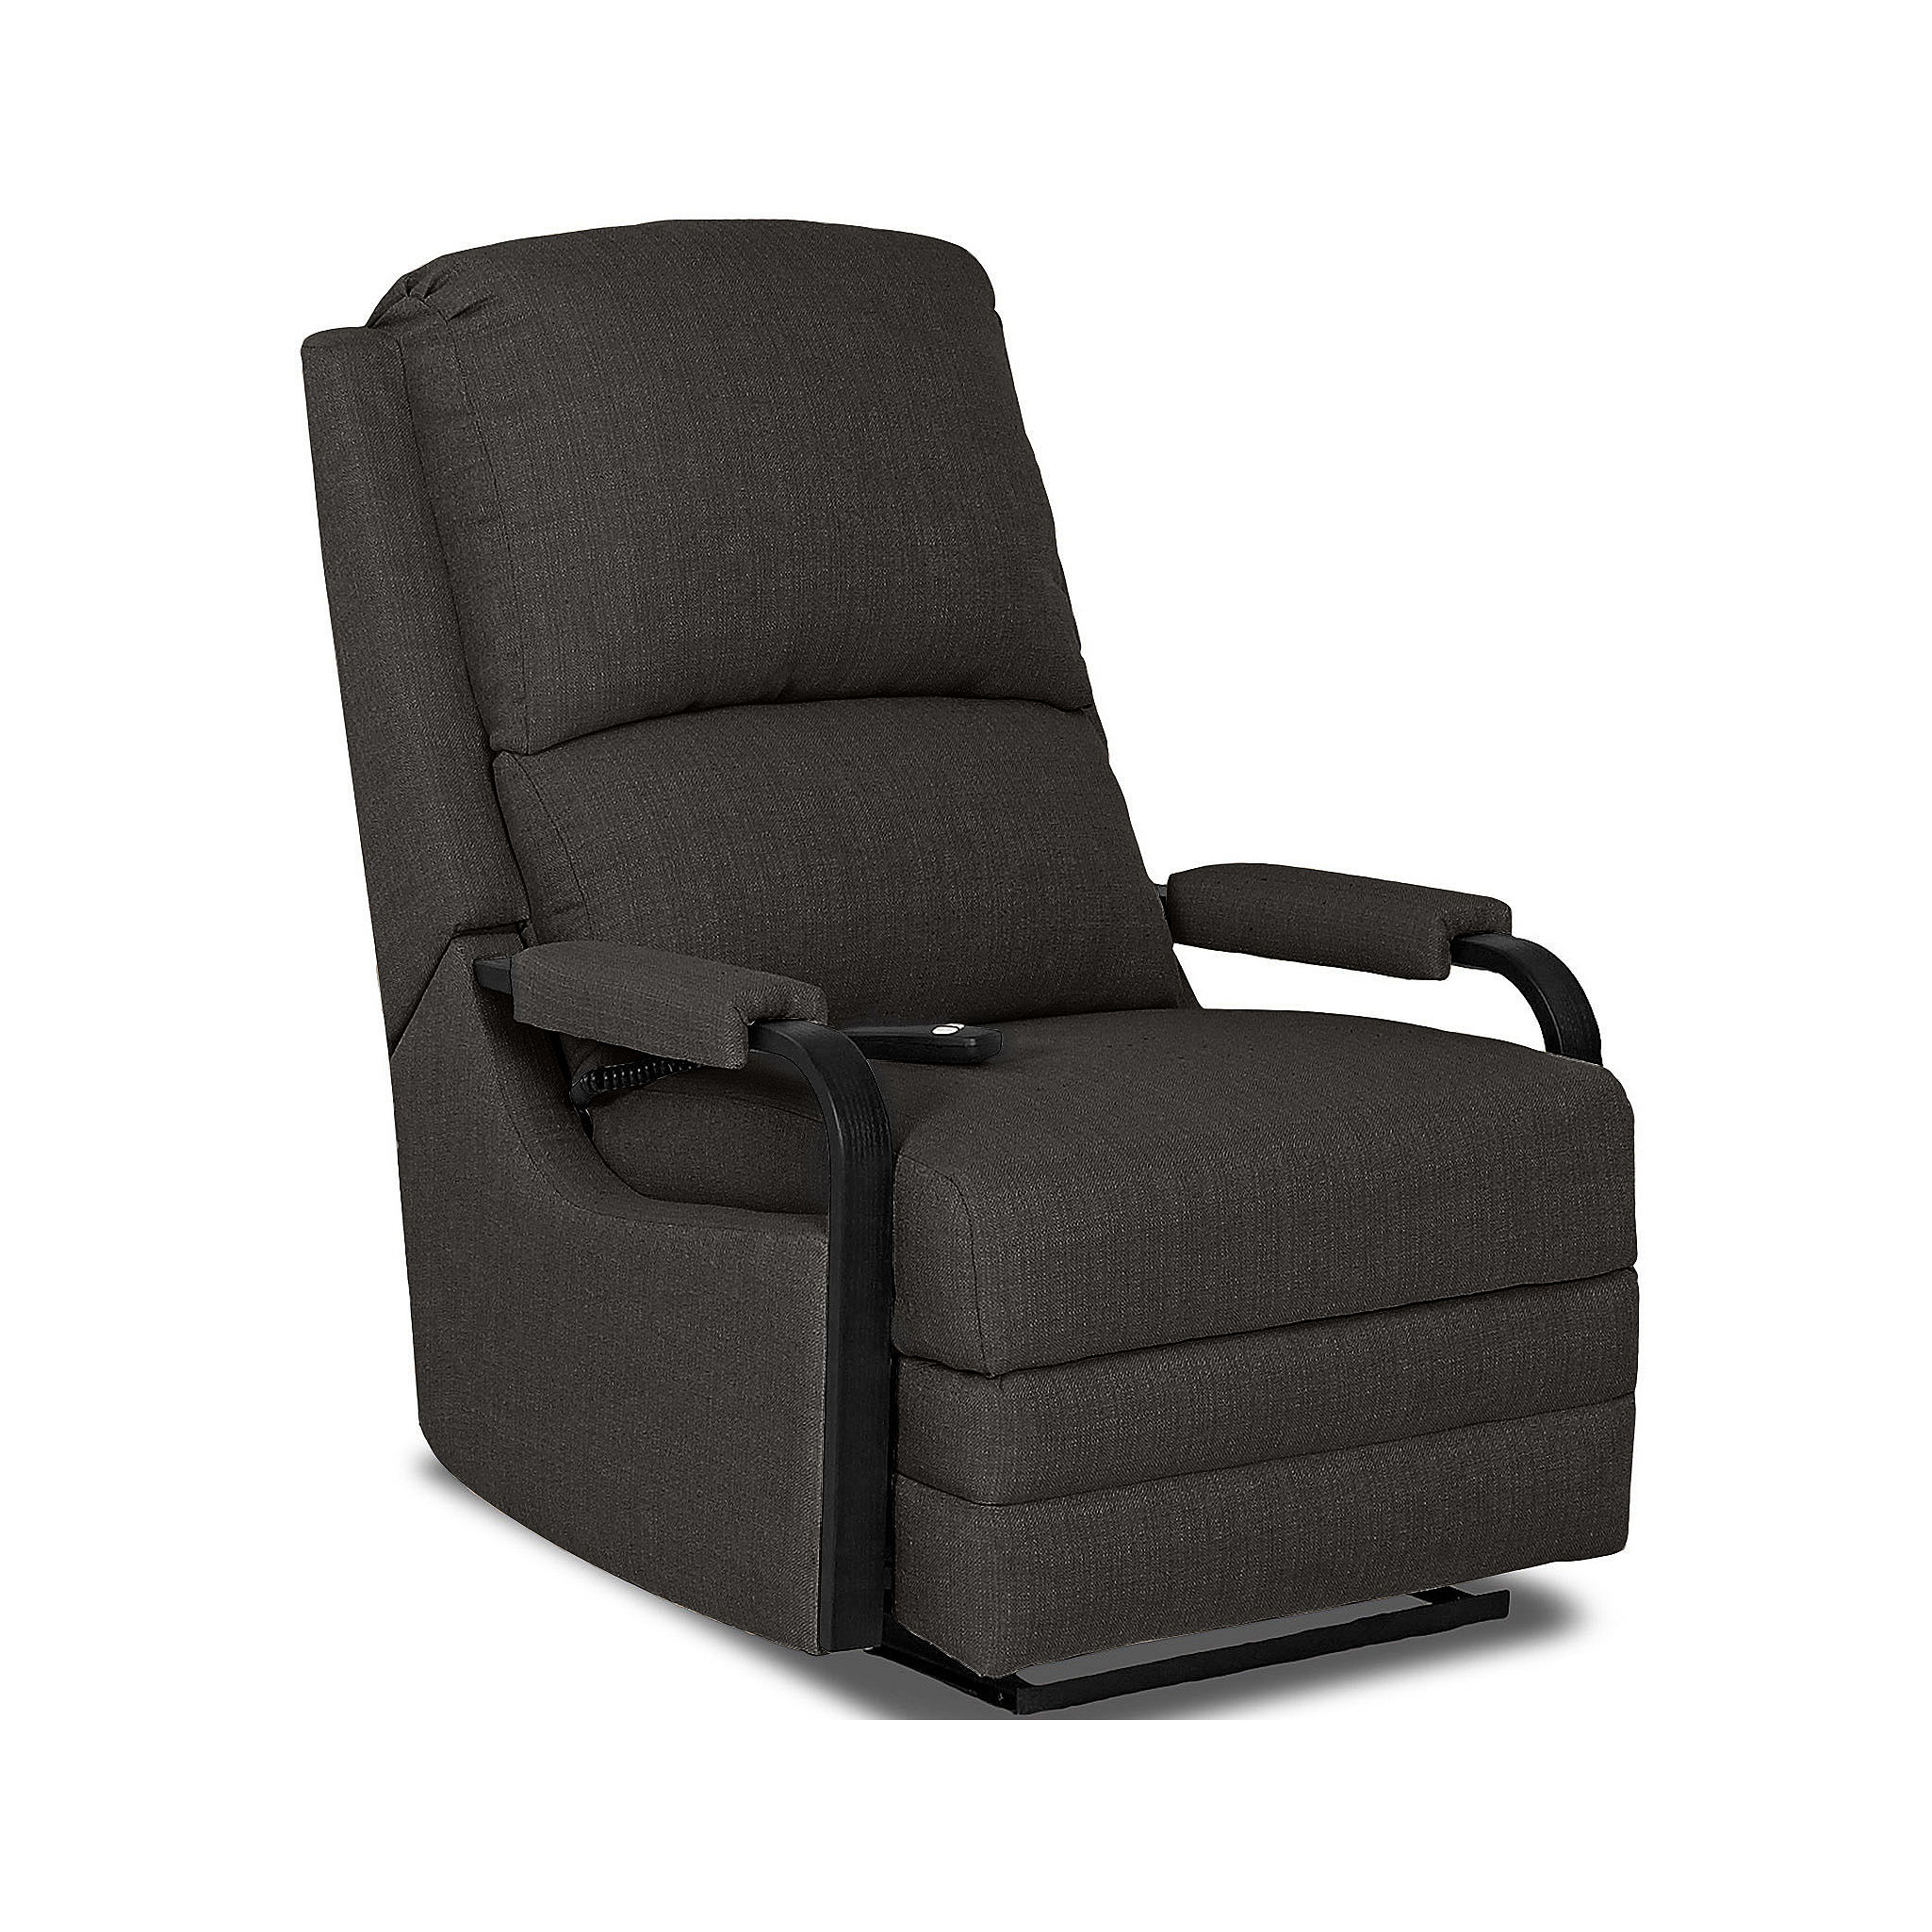 Asstd National Brand Pearl Fabric Lift Recliner - was $1695.0, now $1017.0 (40% Off). Picked by amyb @ jcpenney